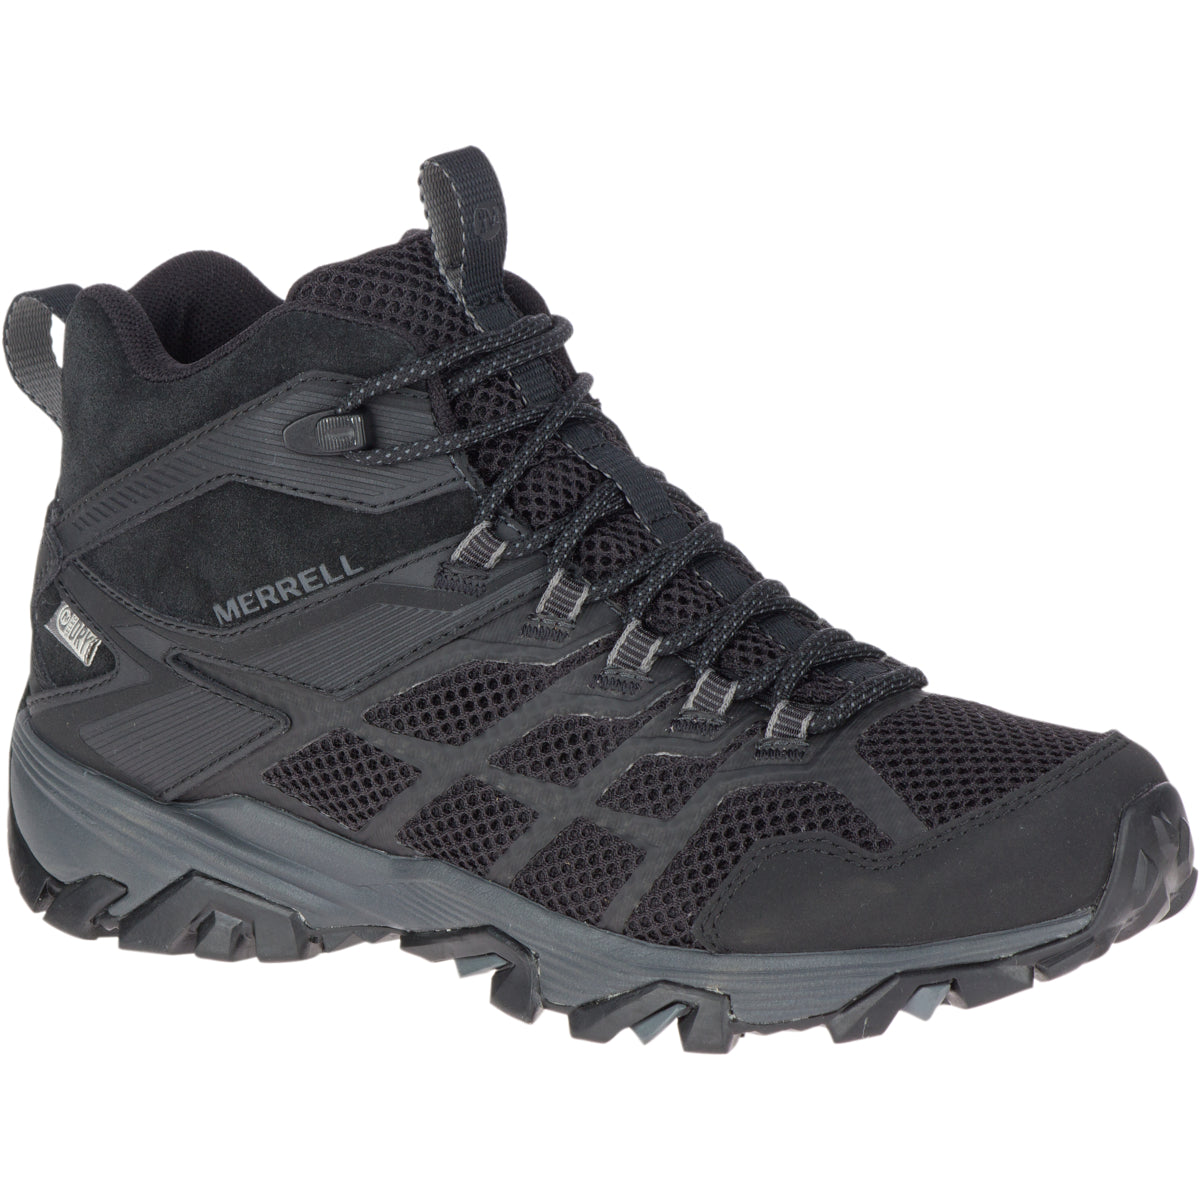 Merrell Women's Moab FST 2 Ice + Thermo